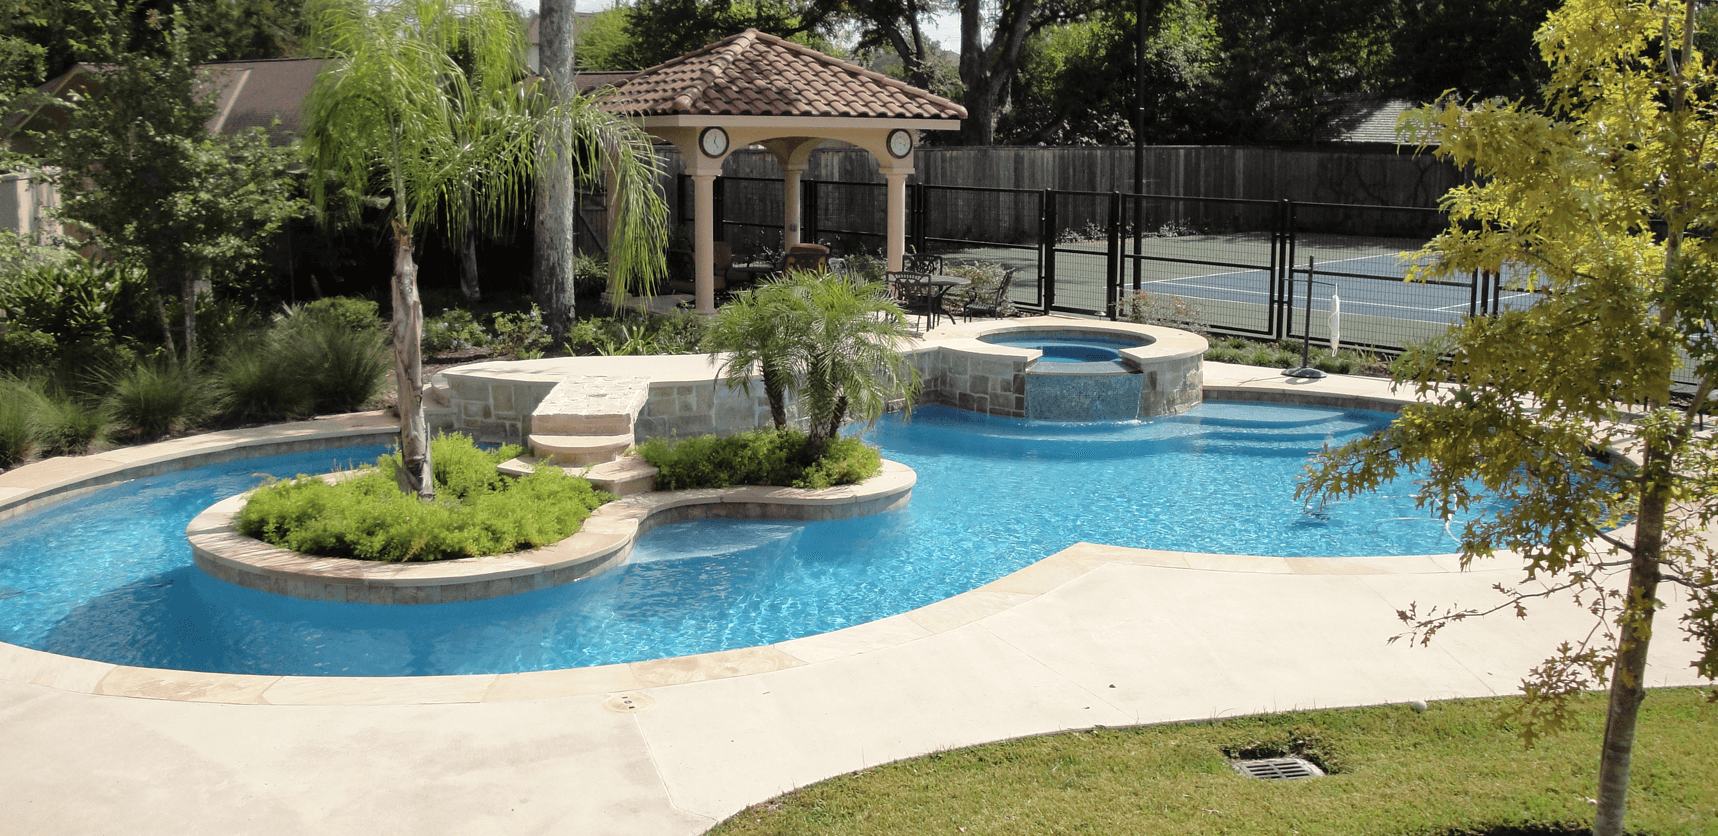 Pool construction houston pool design katy pool service for Pool design inc